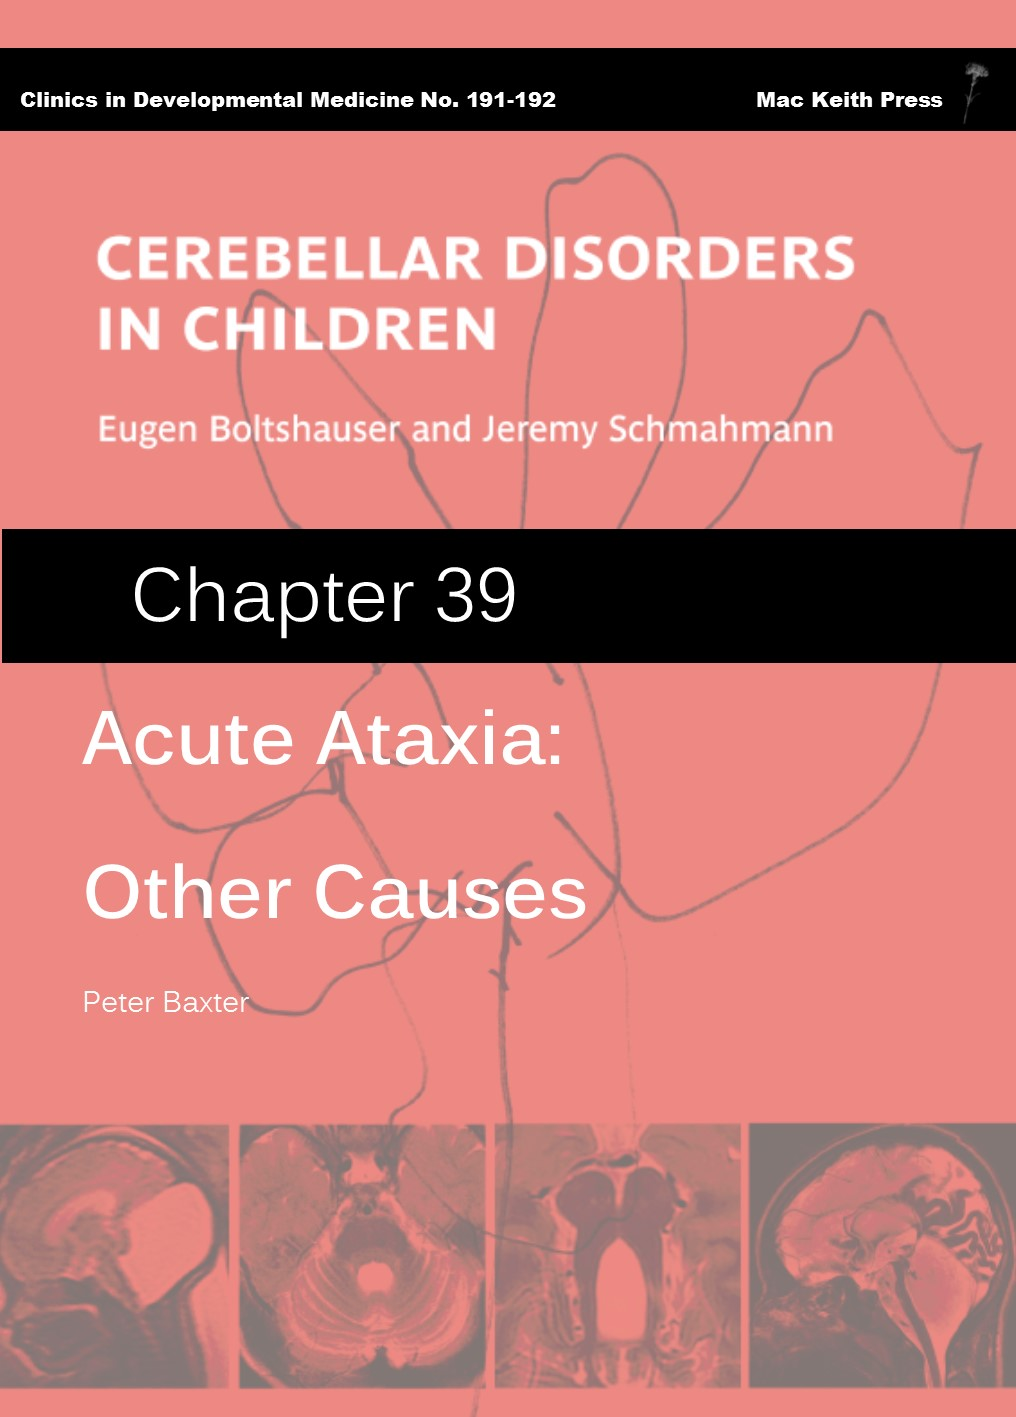 Acute Ataxia: Other Causes - Cerebellar Disorders in Children (Chapter 39) COVER